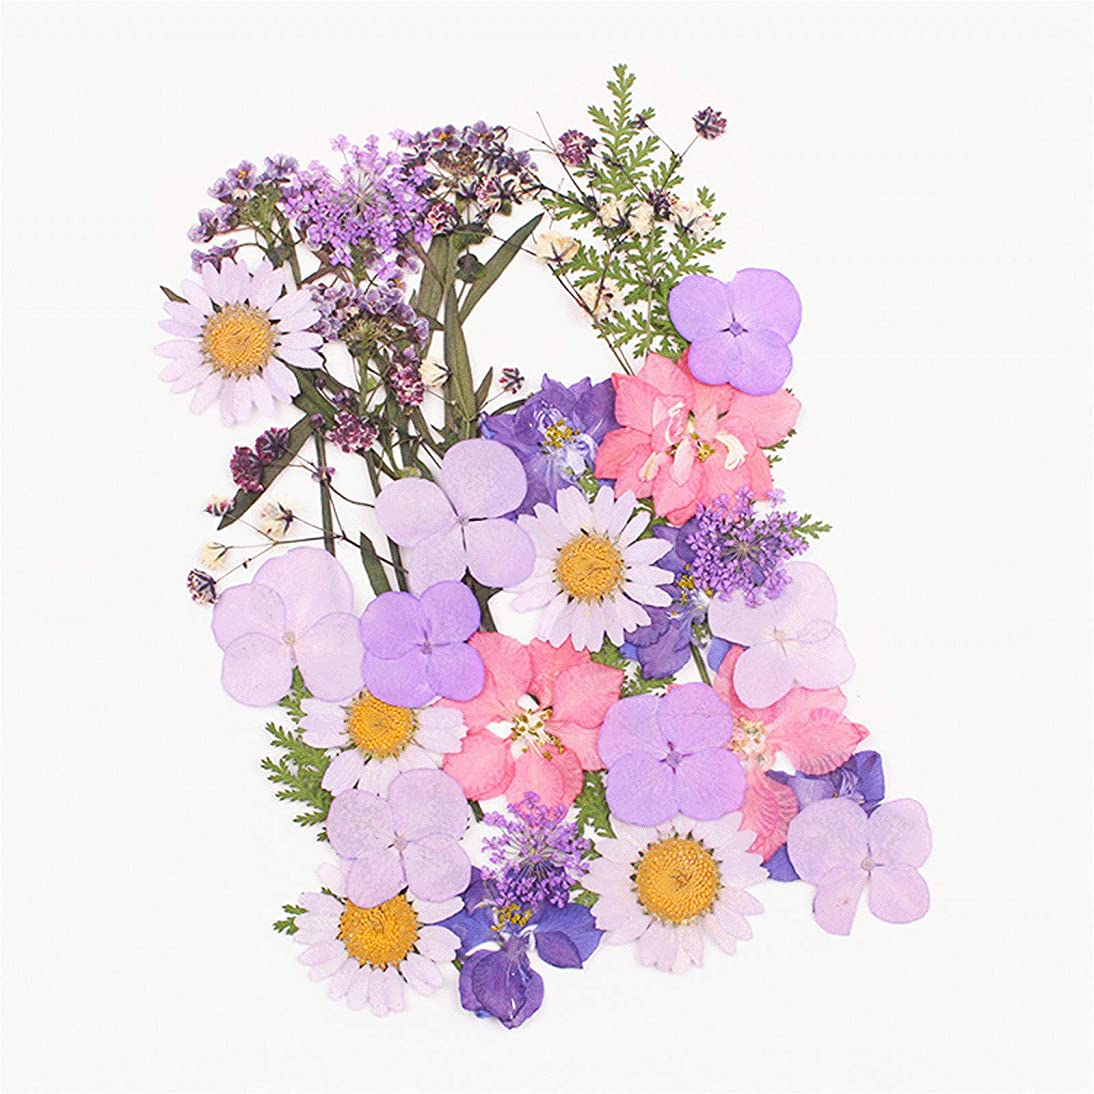 Fciqven Multicolor Natural Real Dried Pressed Flowers DIY Pressed Flower Decorations for Art Craft,Resin Jewelry Making (Style-3)